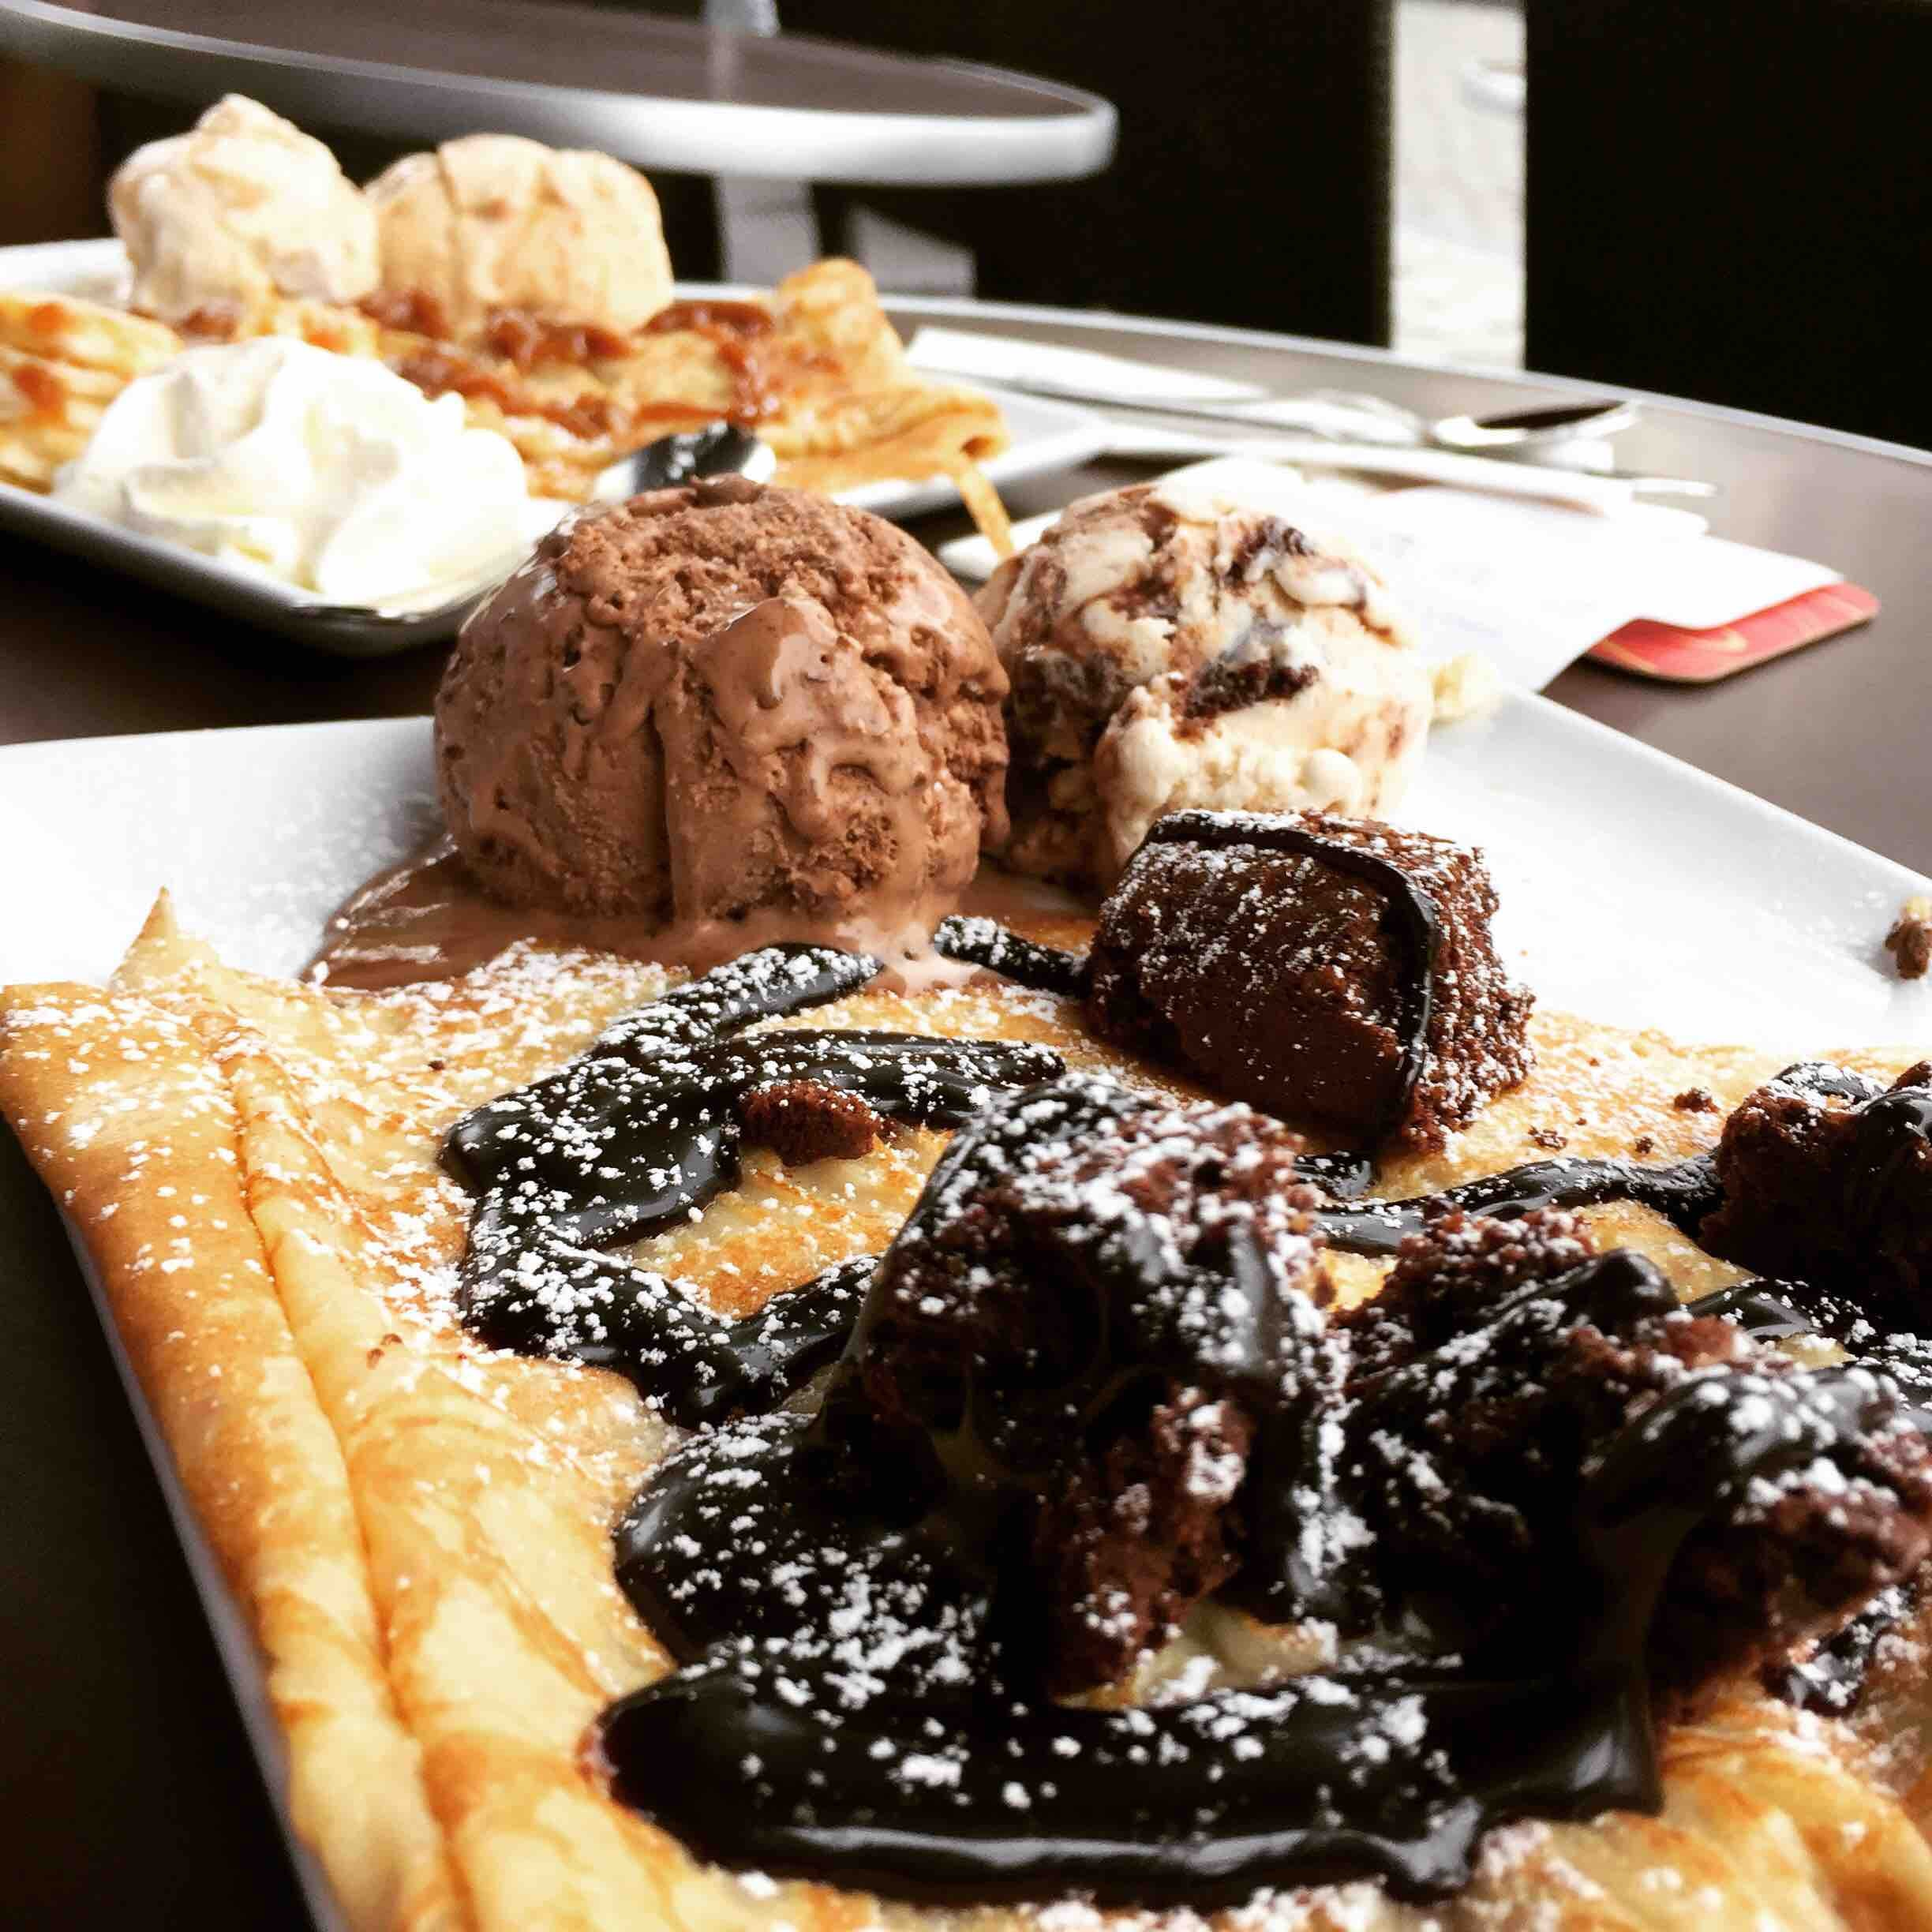 Chocolate lava cake and other desserts.